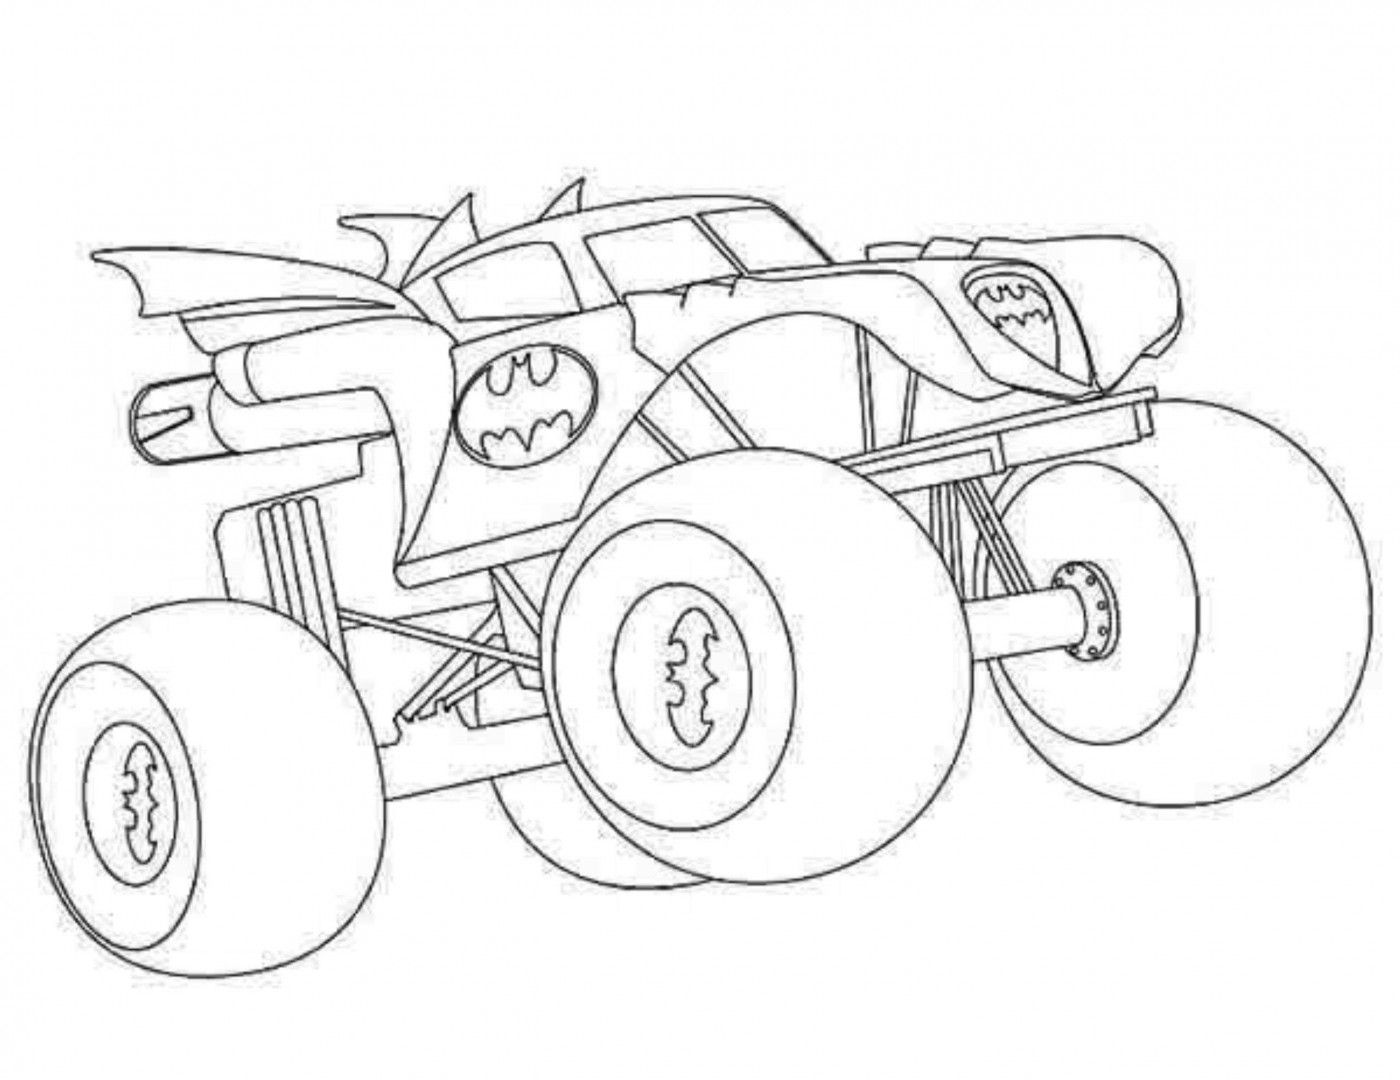 cool truck coloring pages ford f150 pickup truck coloring page free printable cool coloring pages truck